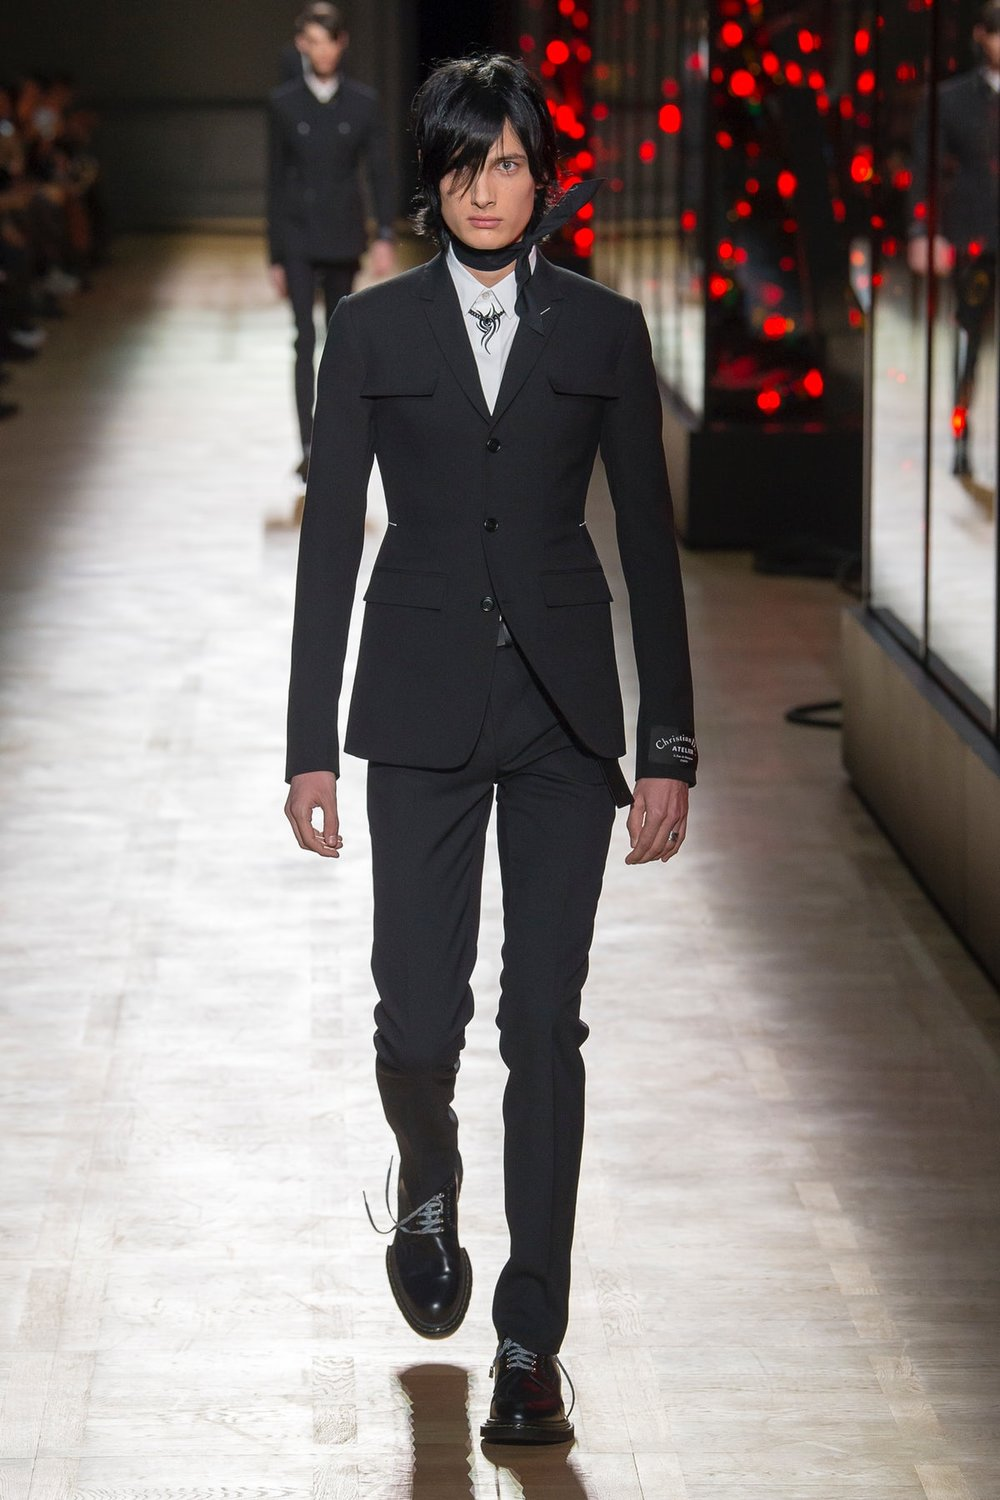 dior_homme_look_3_menswear_autumn_2018.jpeg